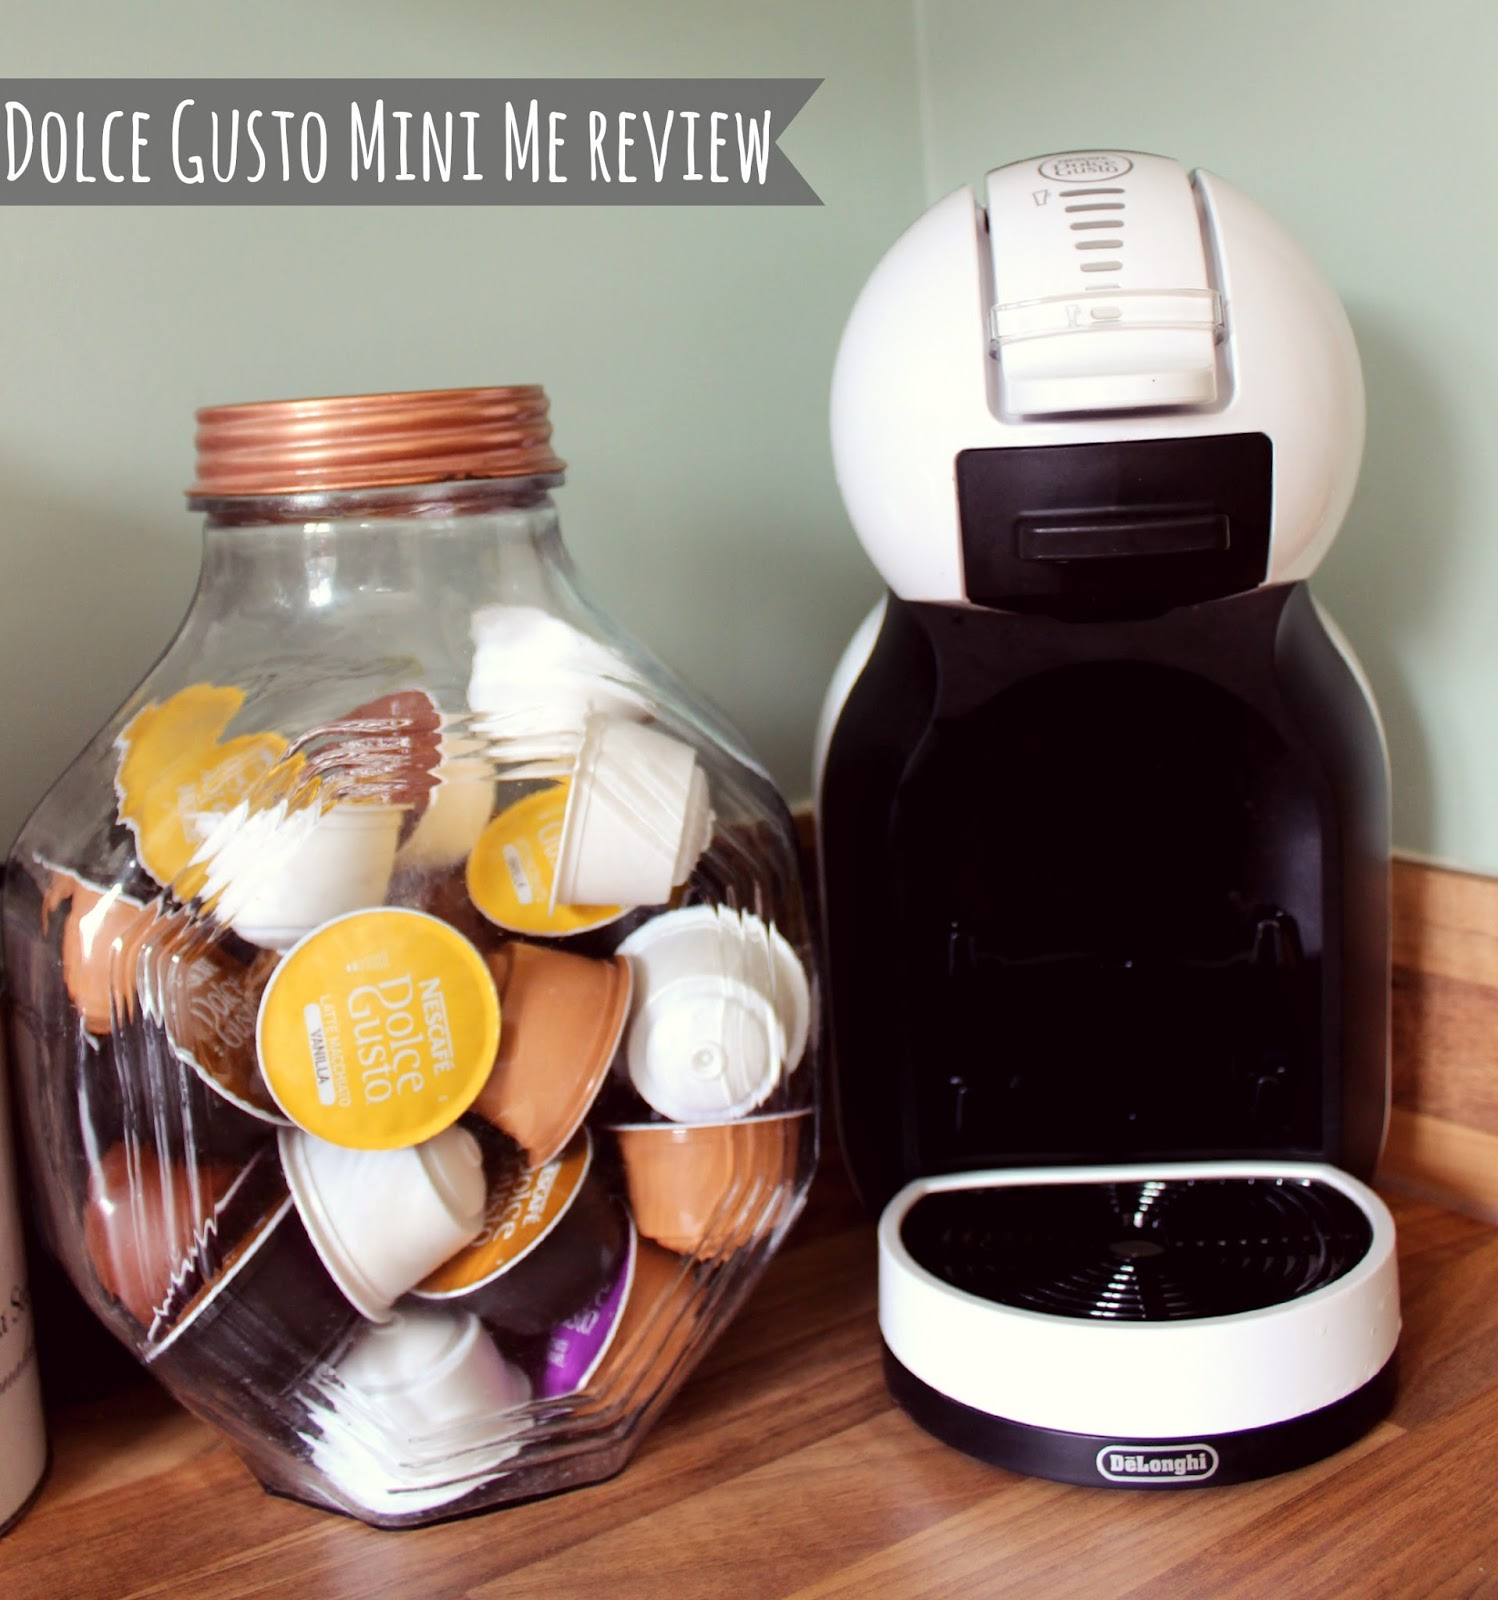 nescafe dolce gusto mini me review k elizabeth